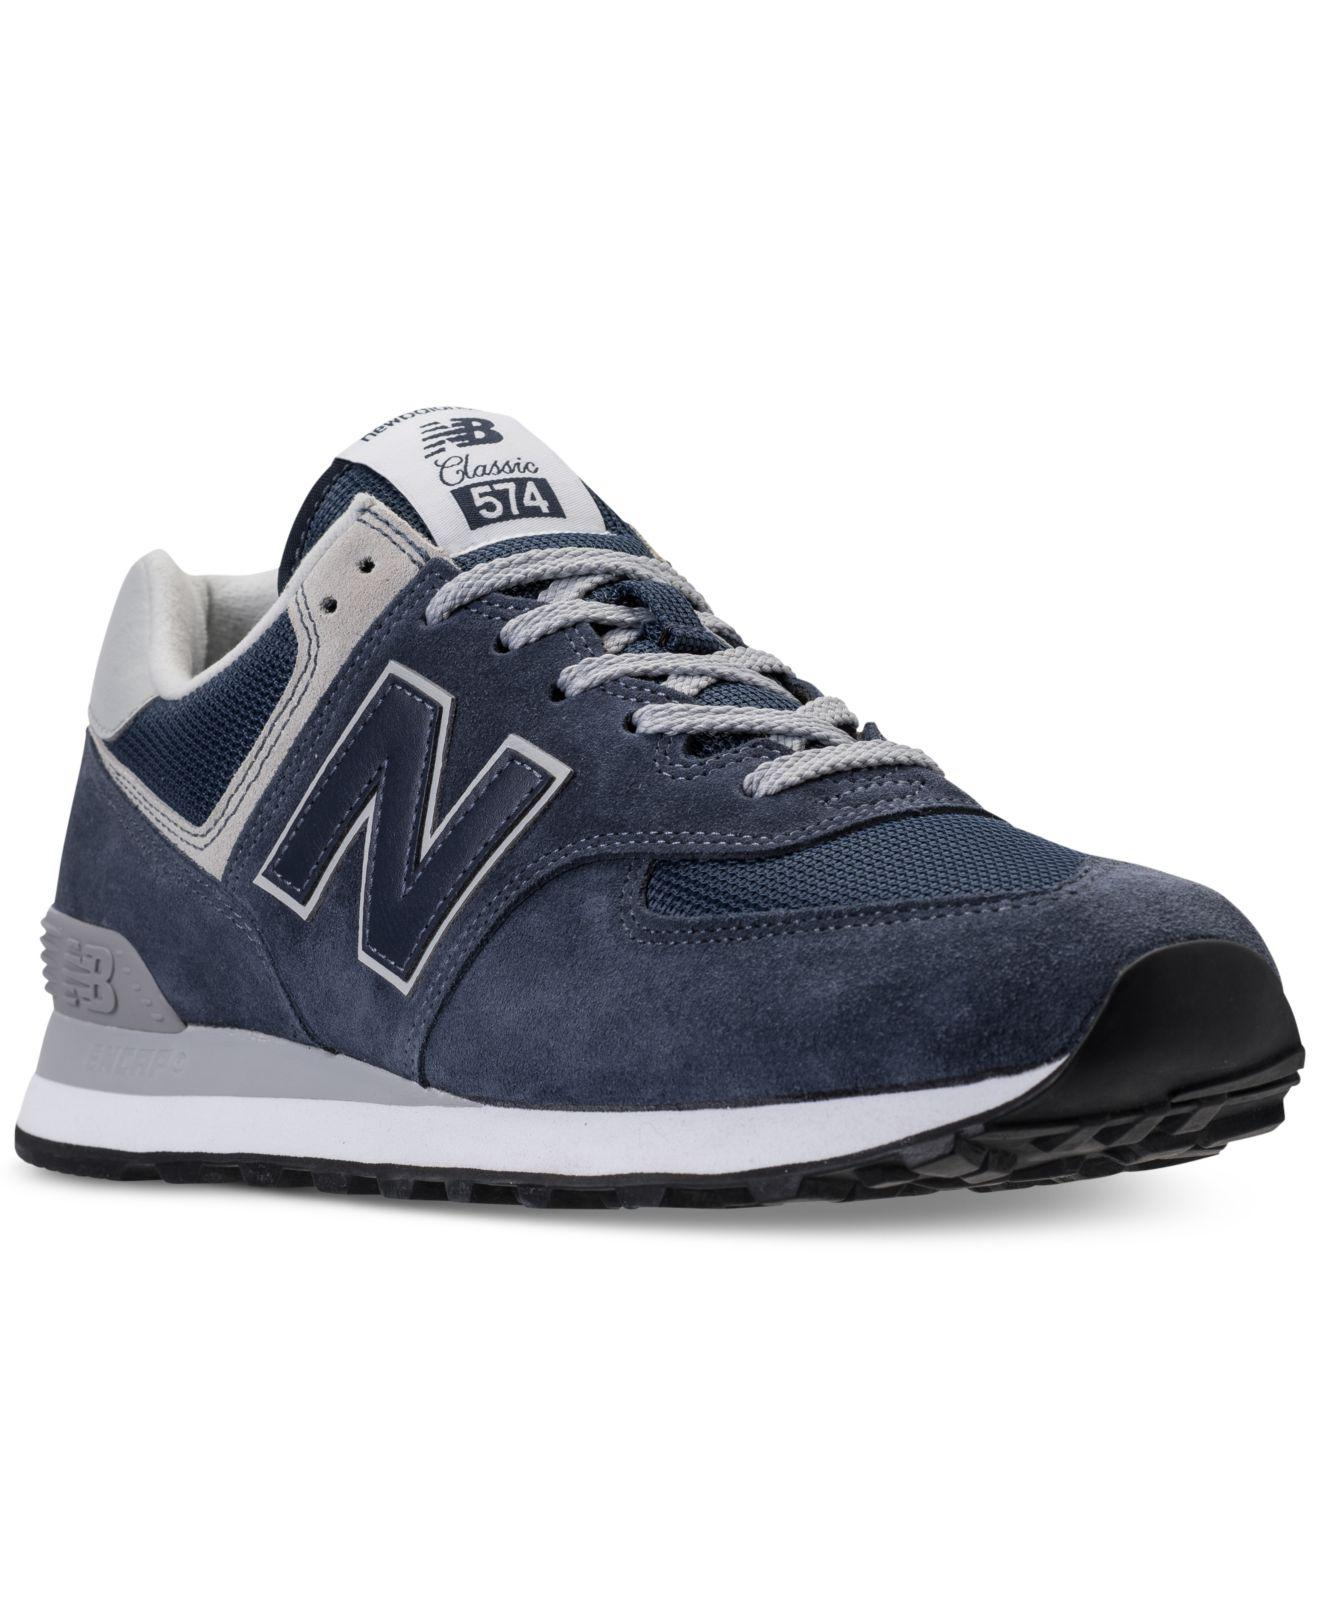 super popular c129f c584d New Balance. Blue Men s Classic 574 Evergreen Suede Lace Up Sneakers